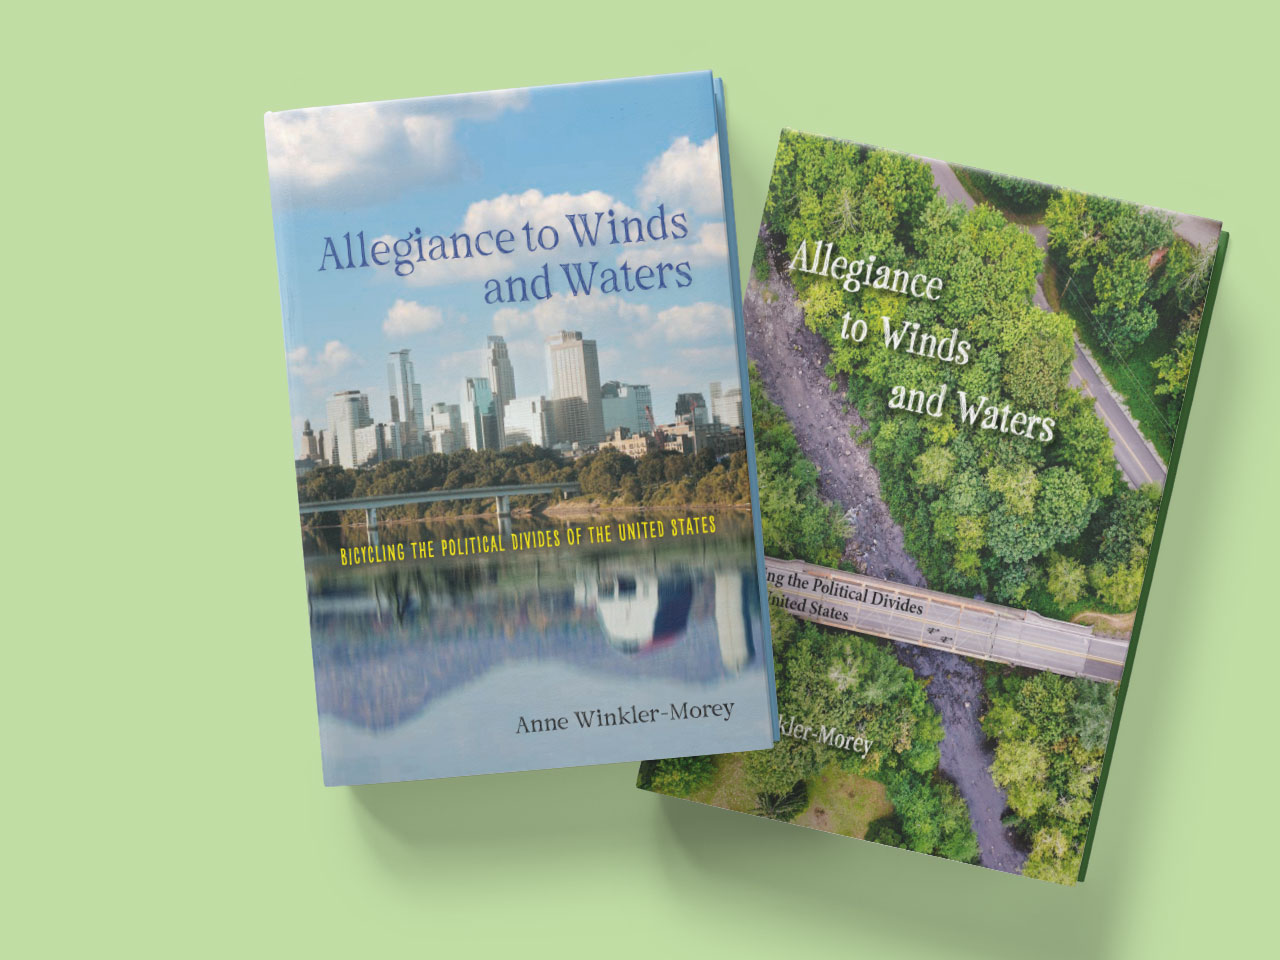 Two concept covers showing bicycling divides